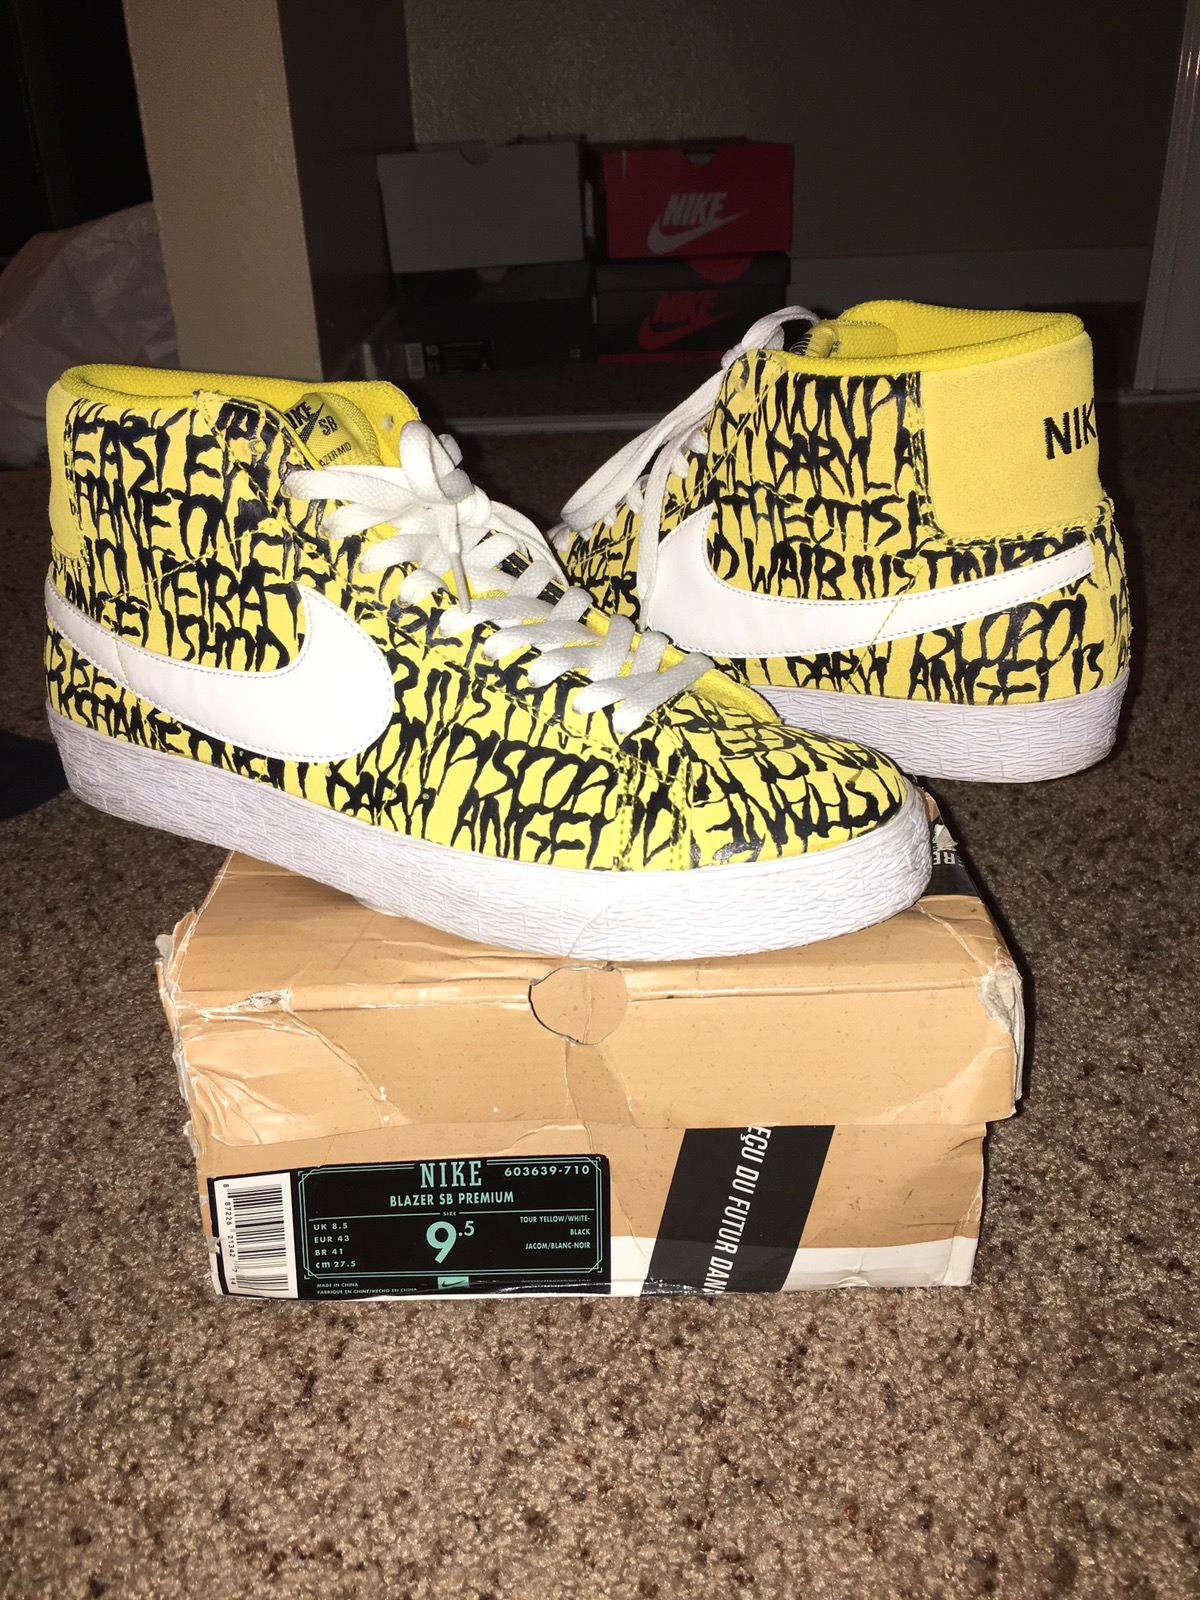 de322b14ec3 Nike Nike Sb Blazer Hi X Neckface Size 9.5 - Hi-Top Sneakers for Sale -  Grailed